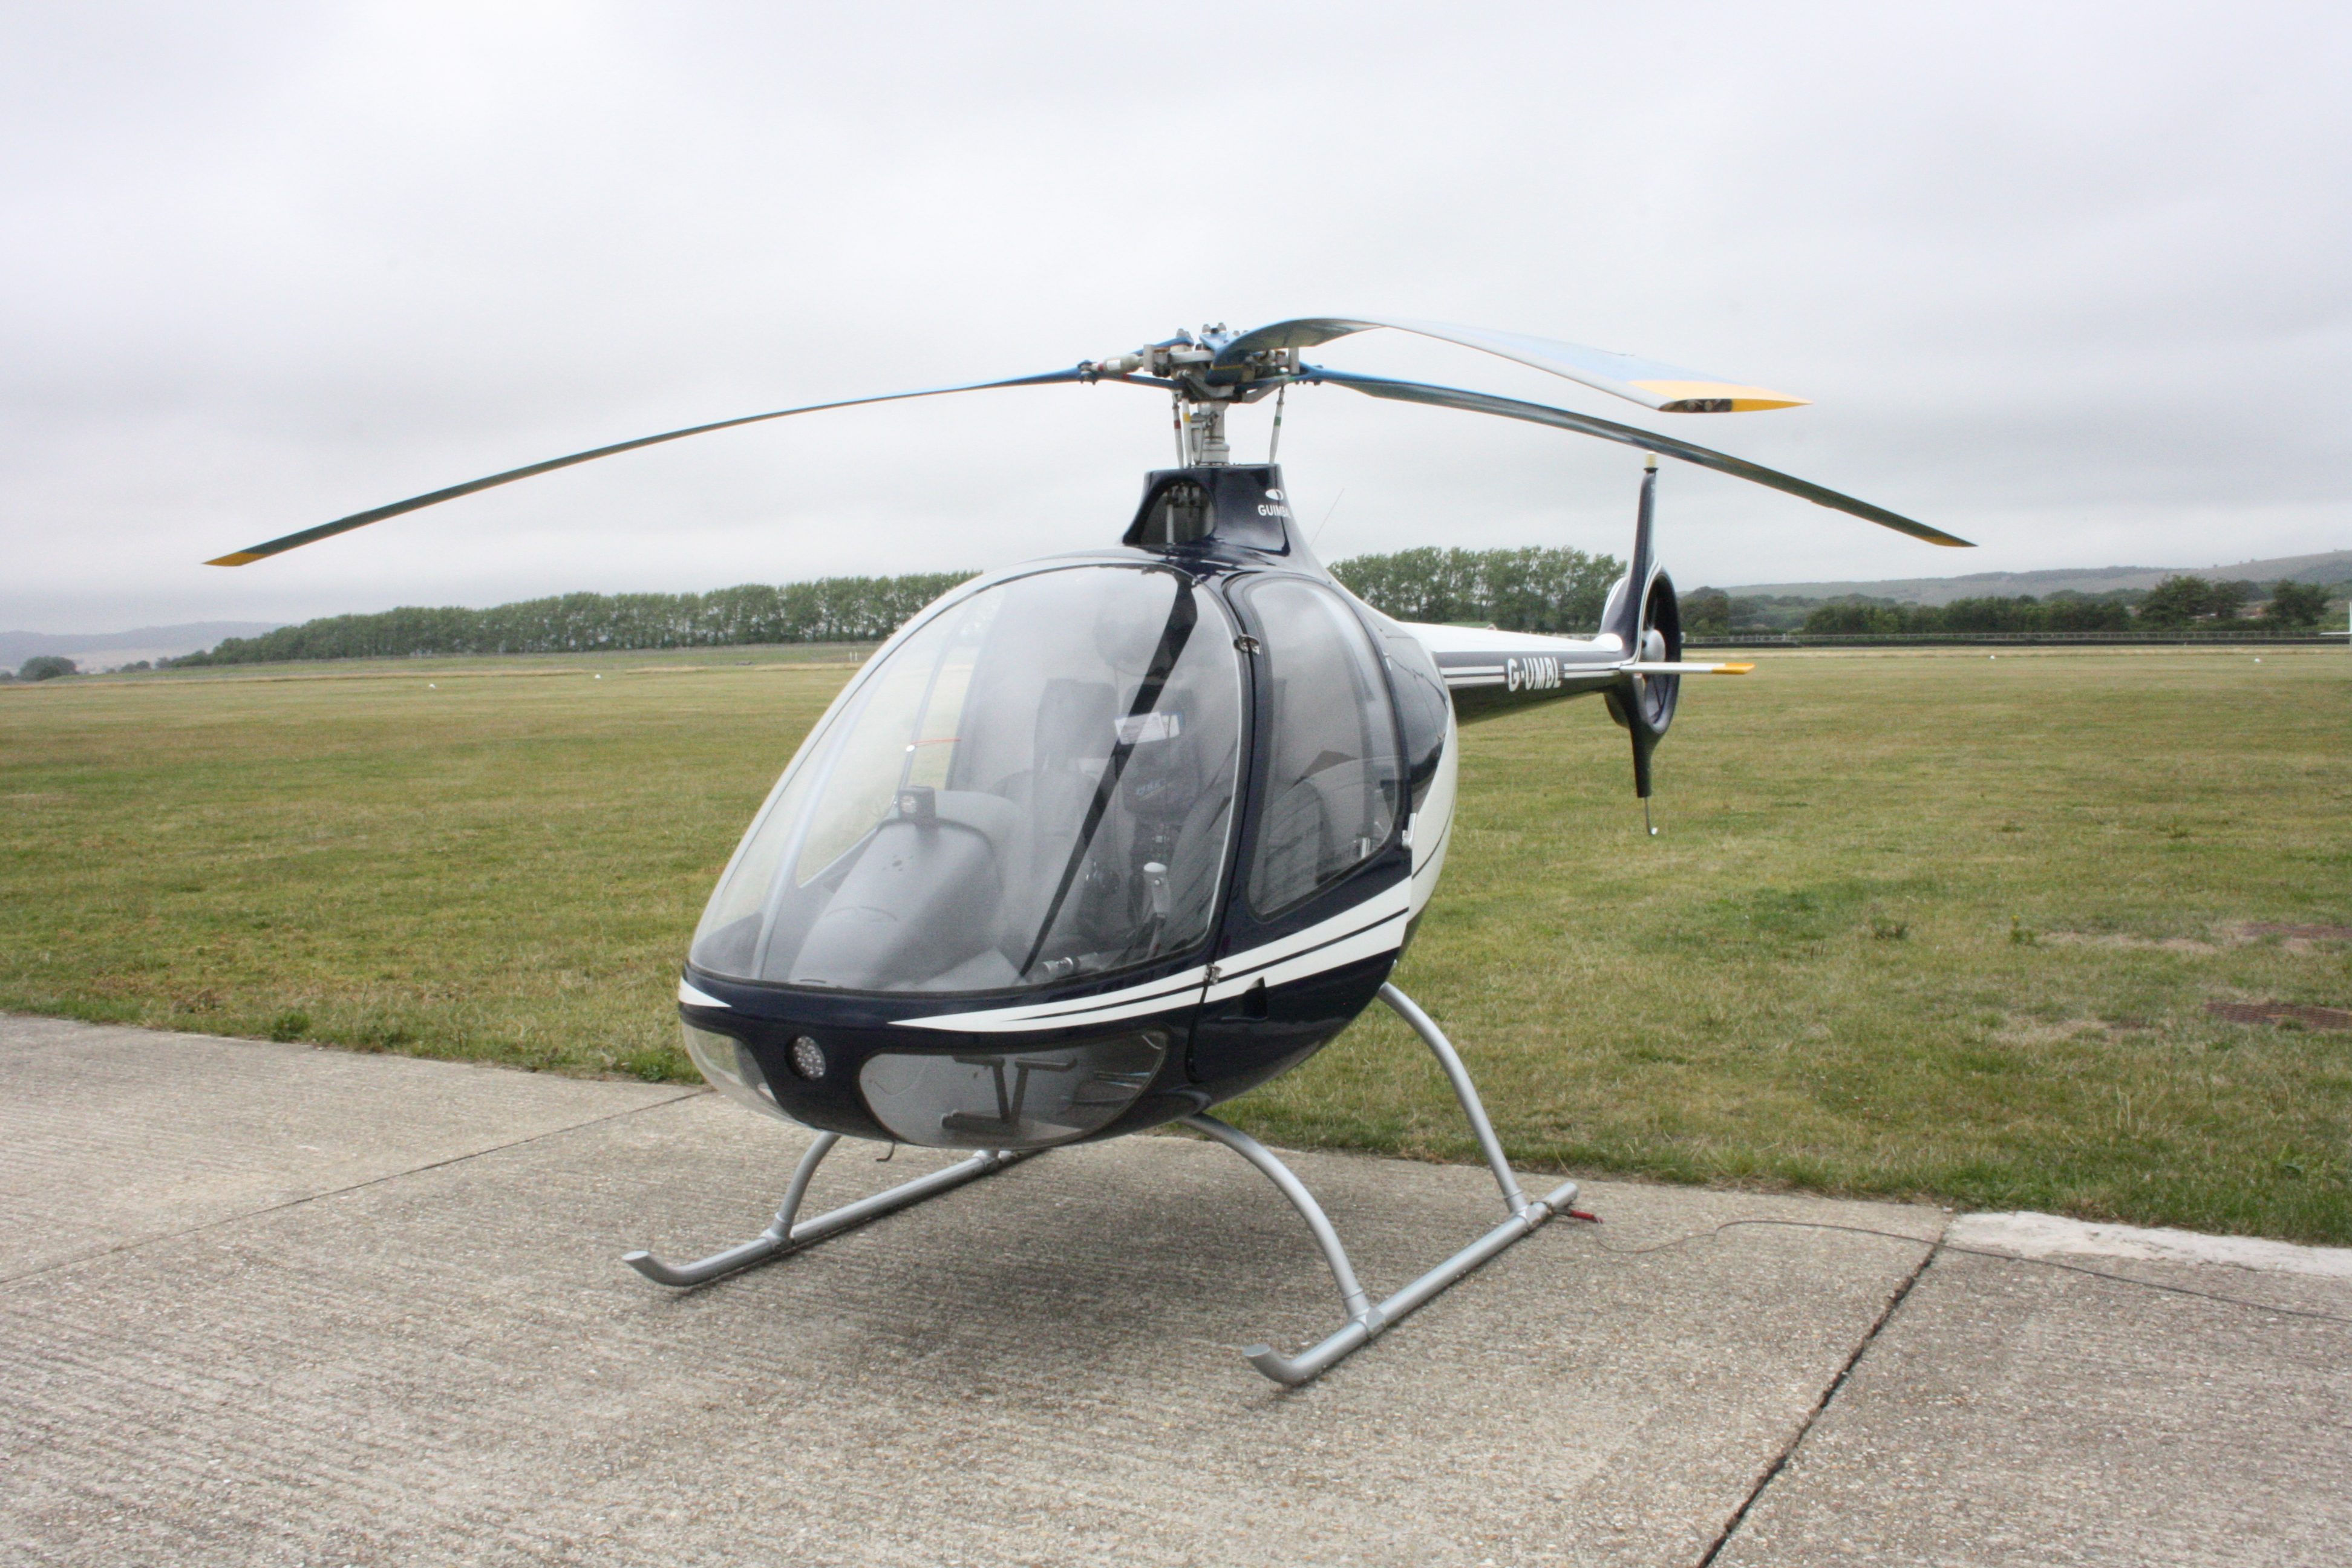 4 seater helicopter with Cabri G2 Type Rating on Acdata 269 en further 49277 Helo4 Future Hunter besides Cessna 182 Skylane also Malawis Felix Kambwiri Builds Helicopter as well Dlwall.